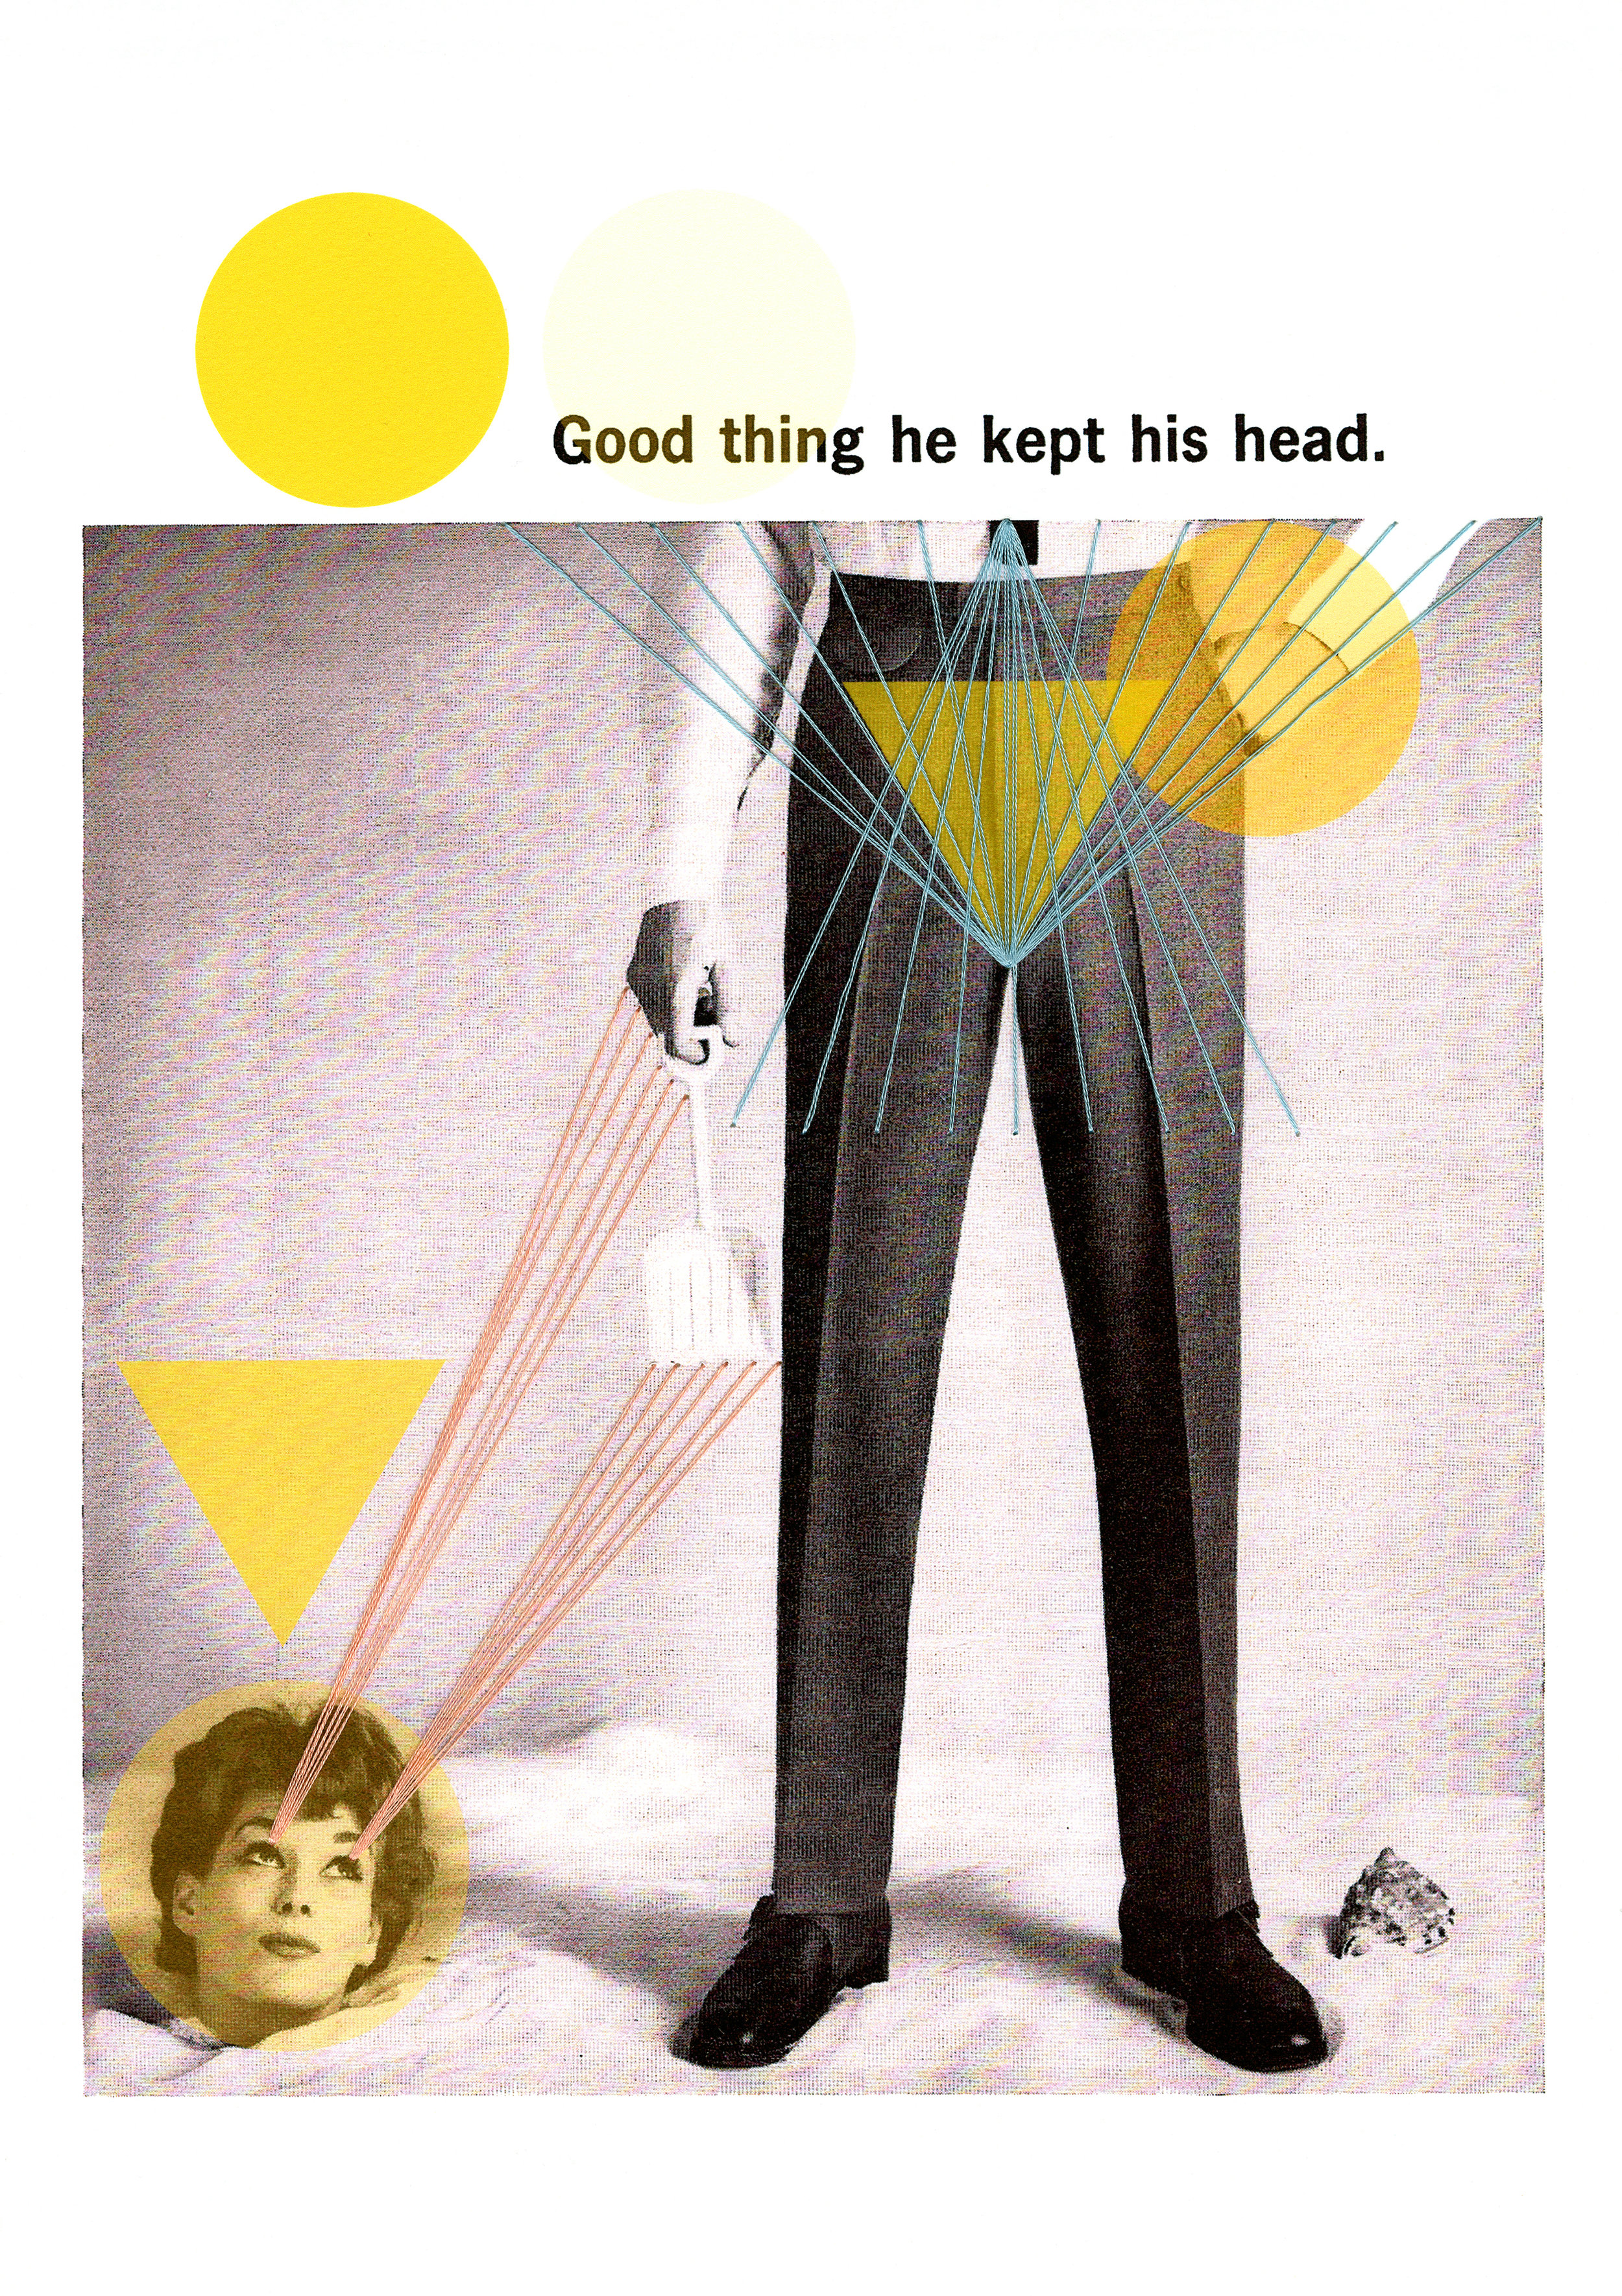 His Head   Vintage Ad digitally altered to highlight sexism Printed on Fine Art Paper Embroidery Thread